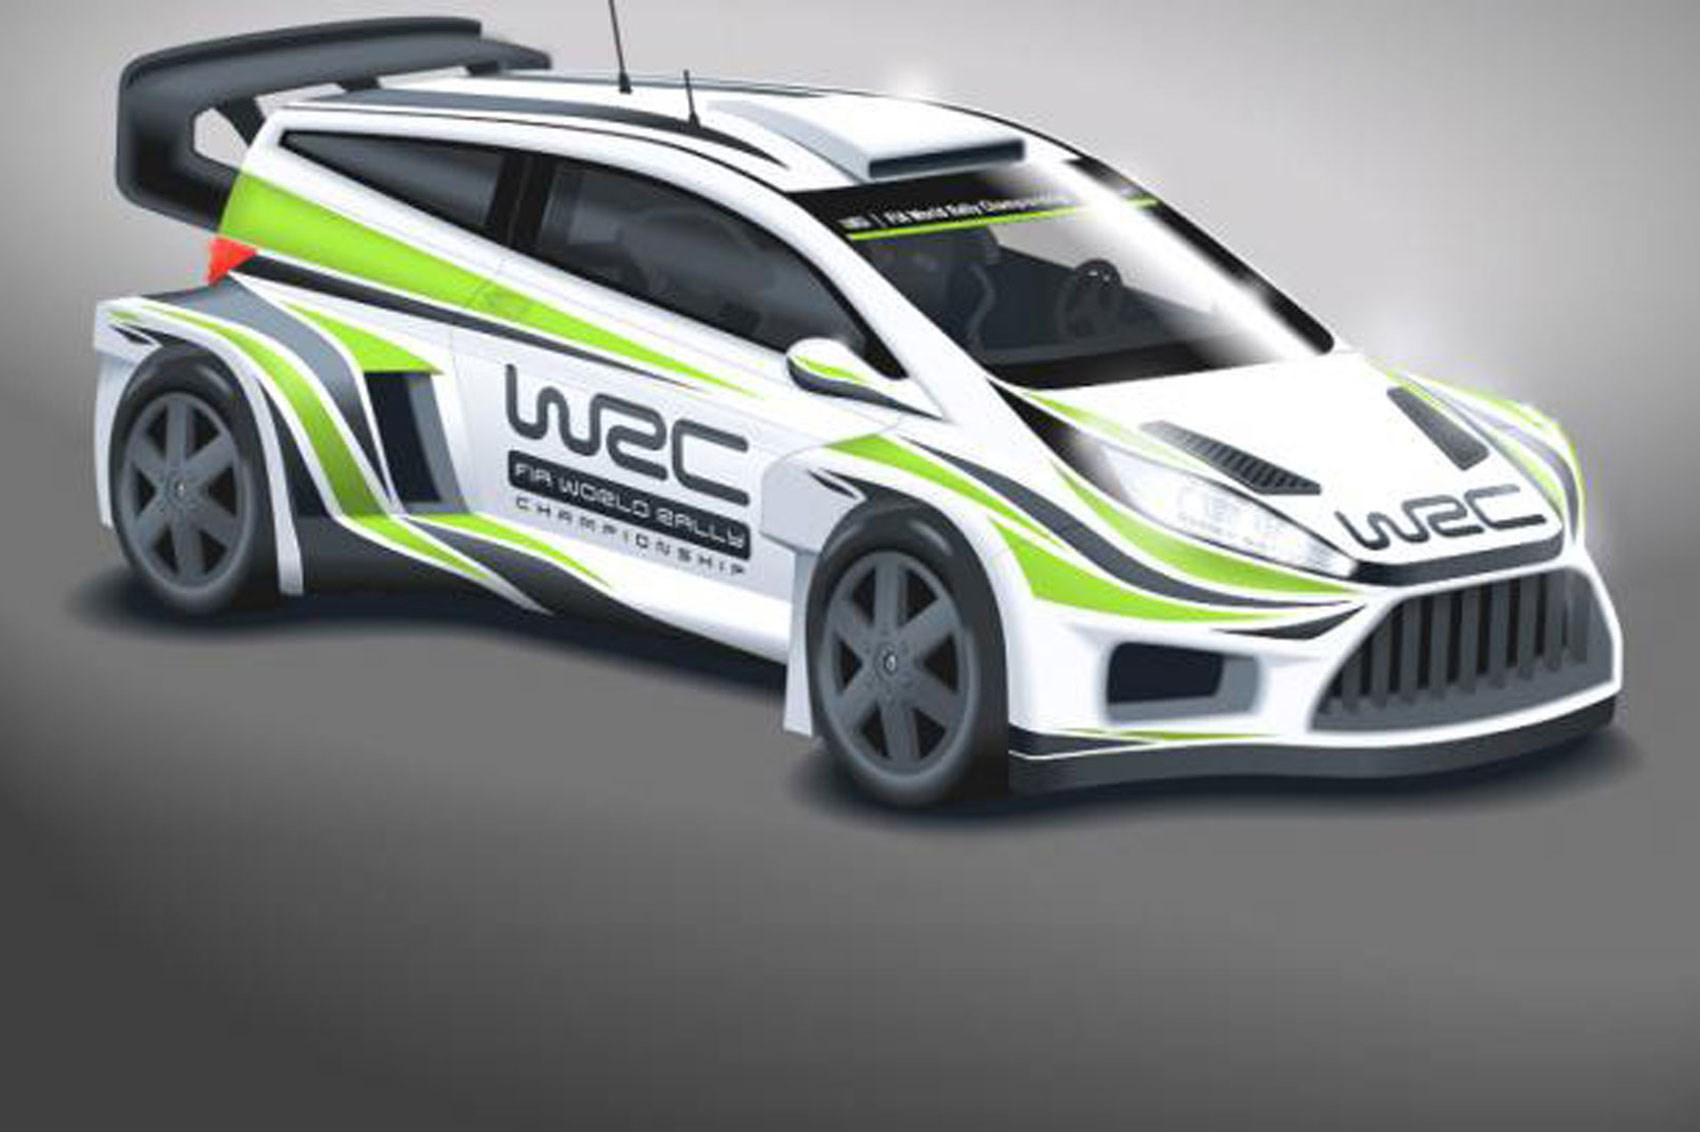 Ultrablogus  Picturesque Wild New Look For Wrc Cars In  By Car Magazine With Engaging Wrc Cars Will Get Wider Bodies Bigger Wings And More Power For  With Attractive  Ford Focus Se Interior Also  Ford F Interior In Addition Mini Van Interior And  Mazda  Interior As Well As  Chrysler Sebring Convertible Interior Additionally Lexus Gx Interior From Carmagazinecouk With Ultrablogus  Engaging Wild New Look For Wrc Cars In  By Car Magazine With Attractive Wrc Cars Will Get Wider Bodies Bigger Wings And More Power For  And Picturesque  Ford Focus Se Interior Also  Ford F Interior In Addition Mini Van Interior From Carmagazinecouk